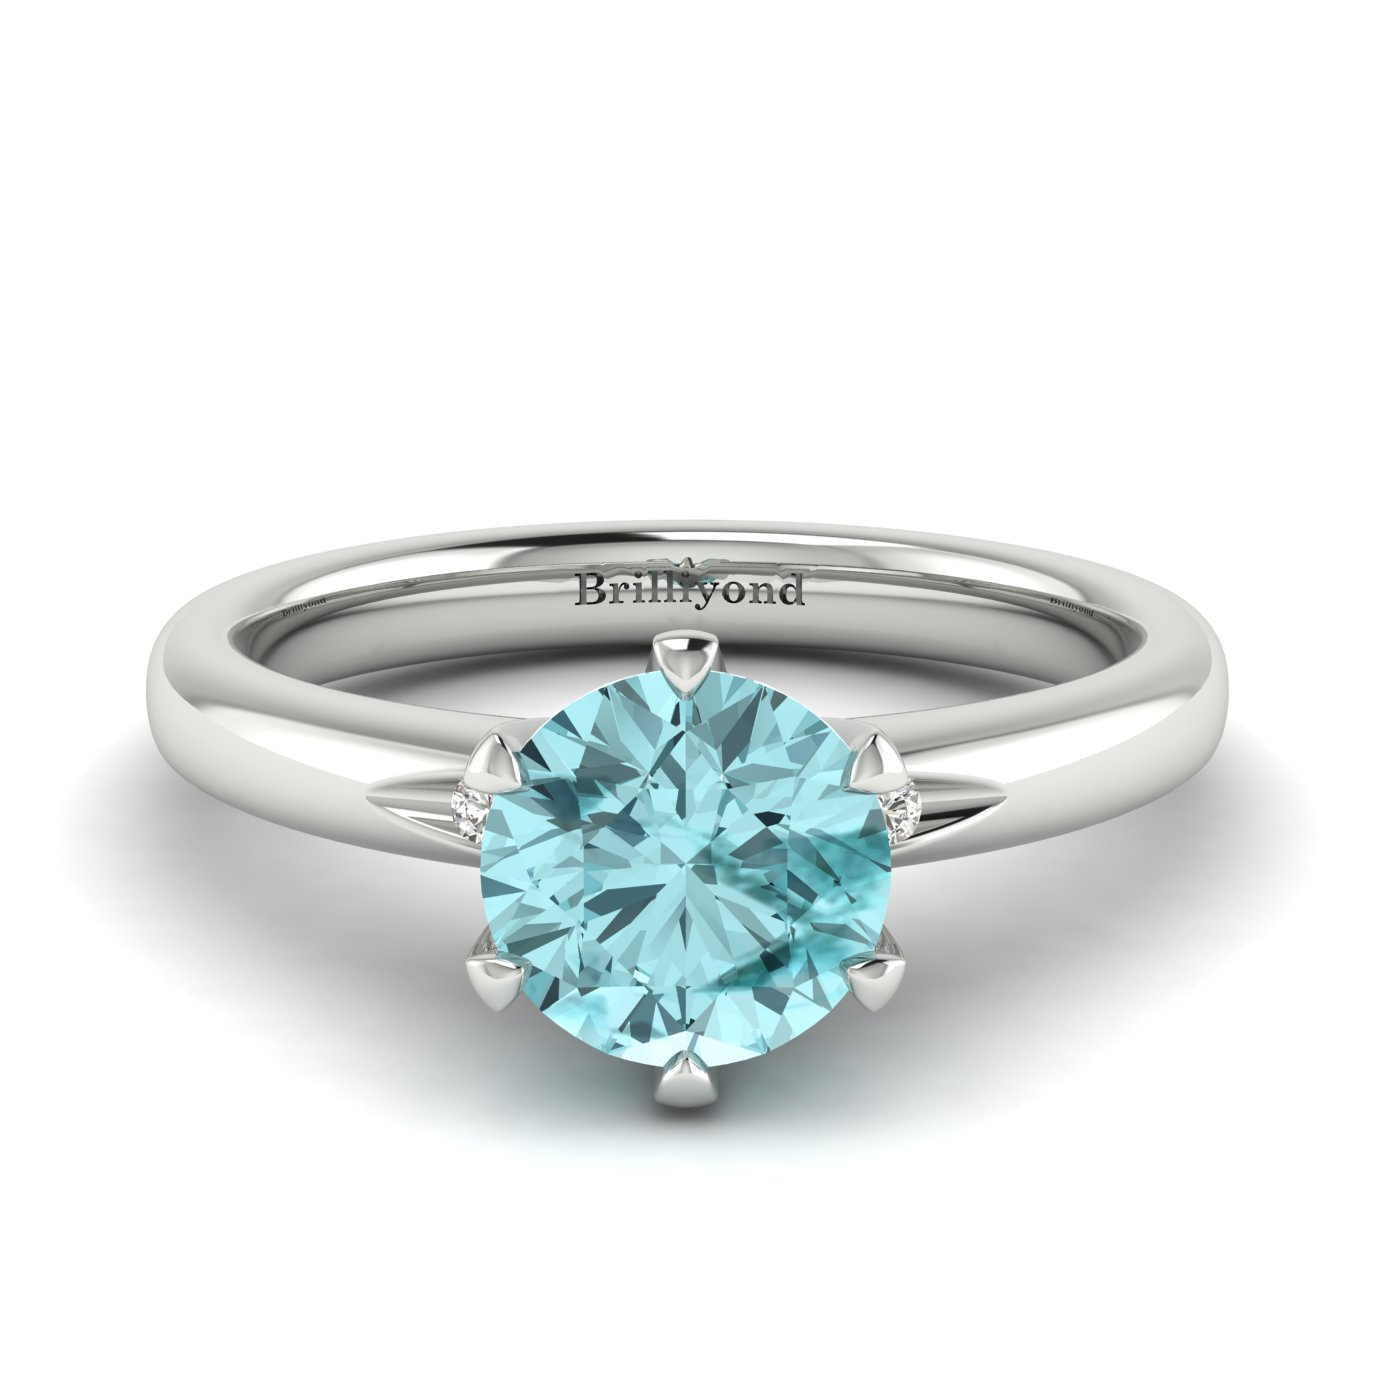 aquamarine rings australia march birthstone aquamarine. Black Bedroom Furniture Sets. Home Design Ideas